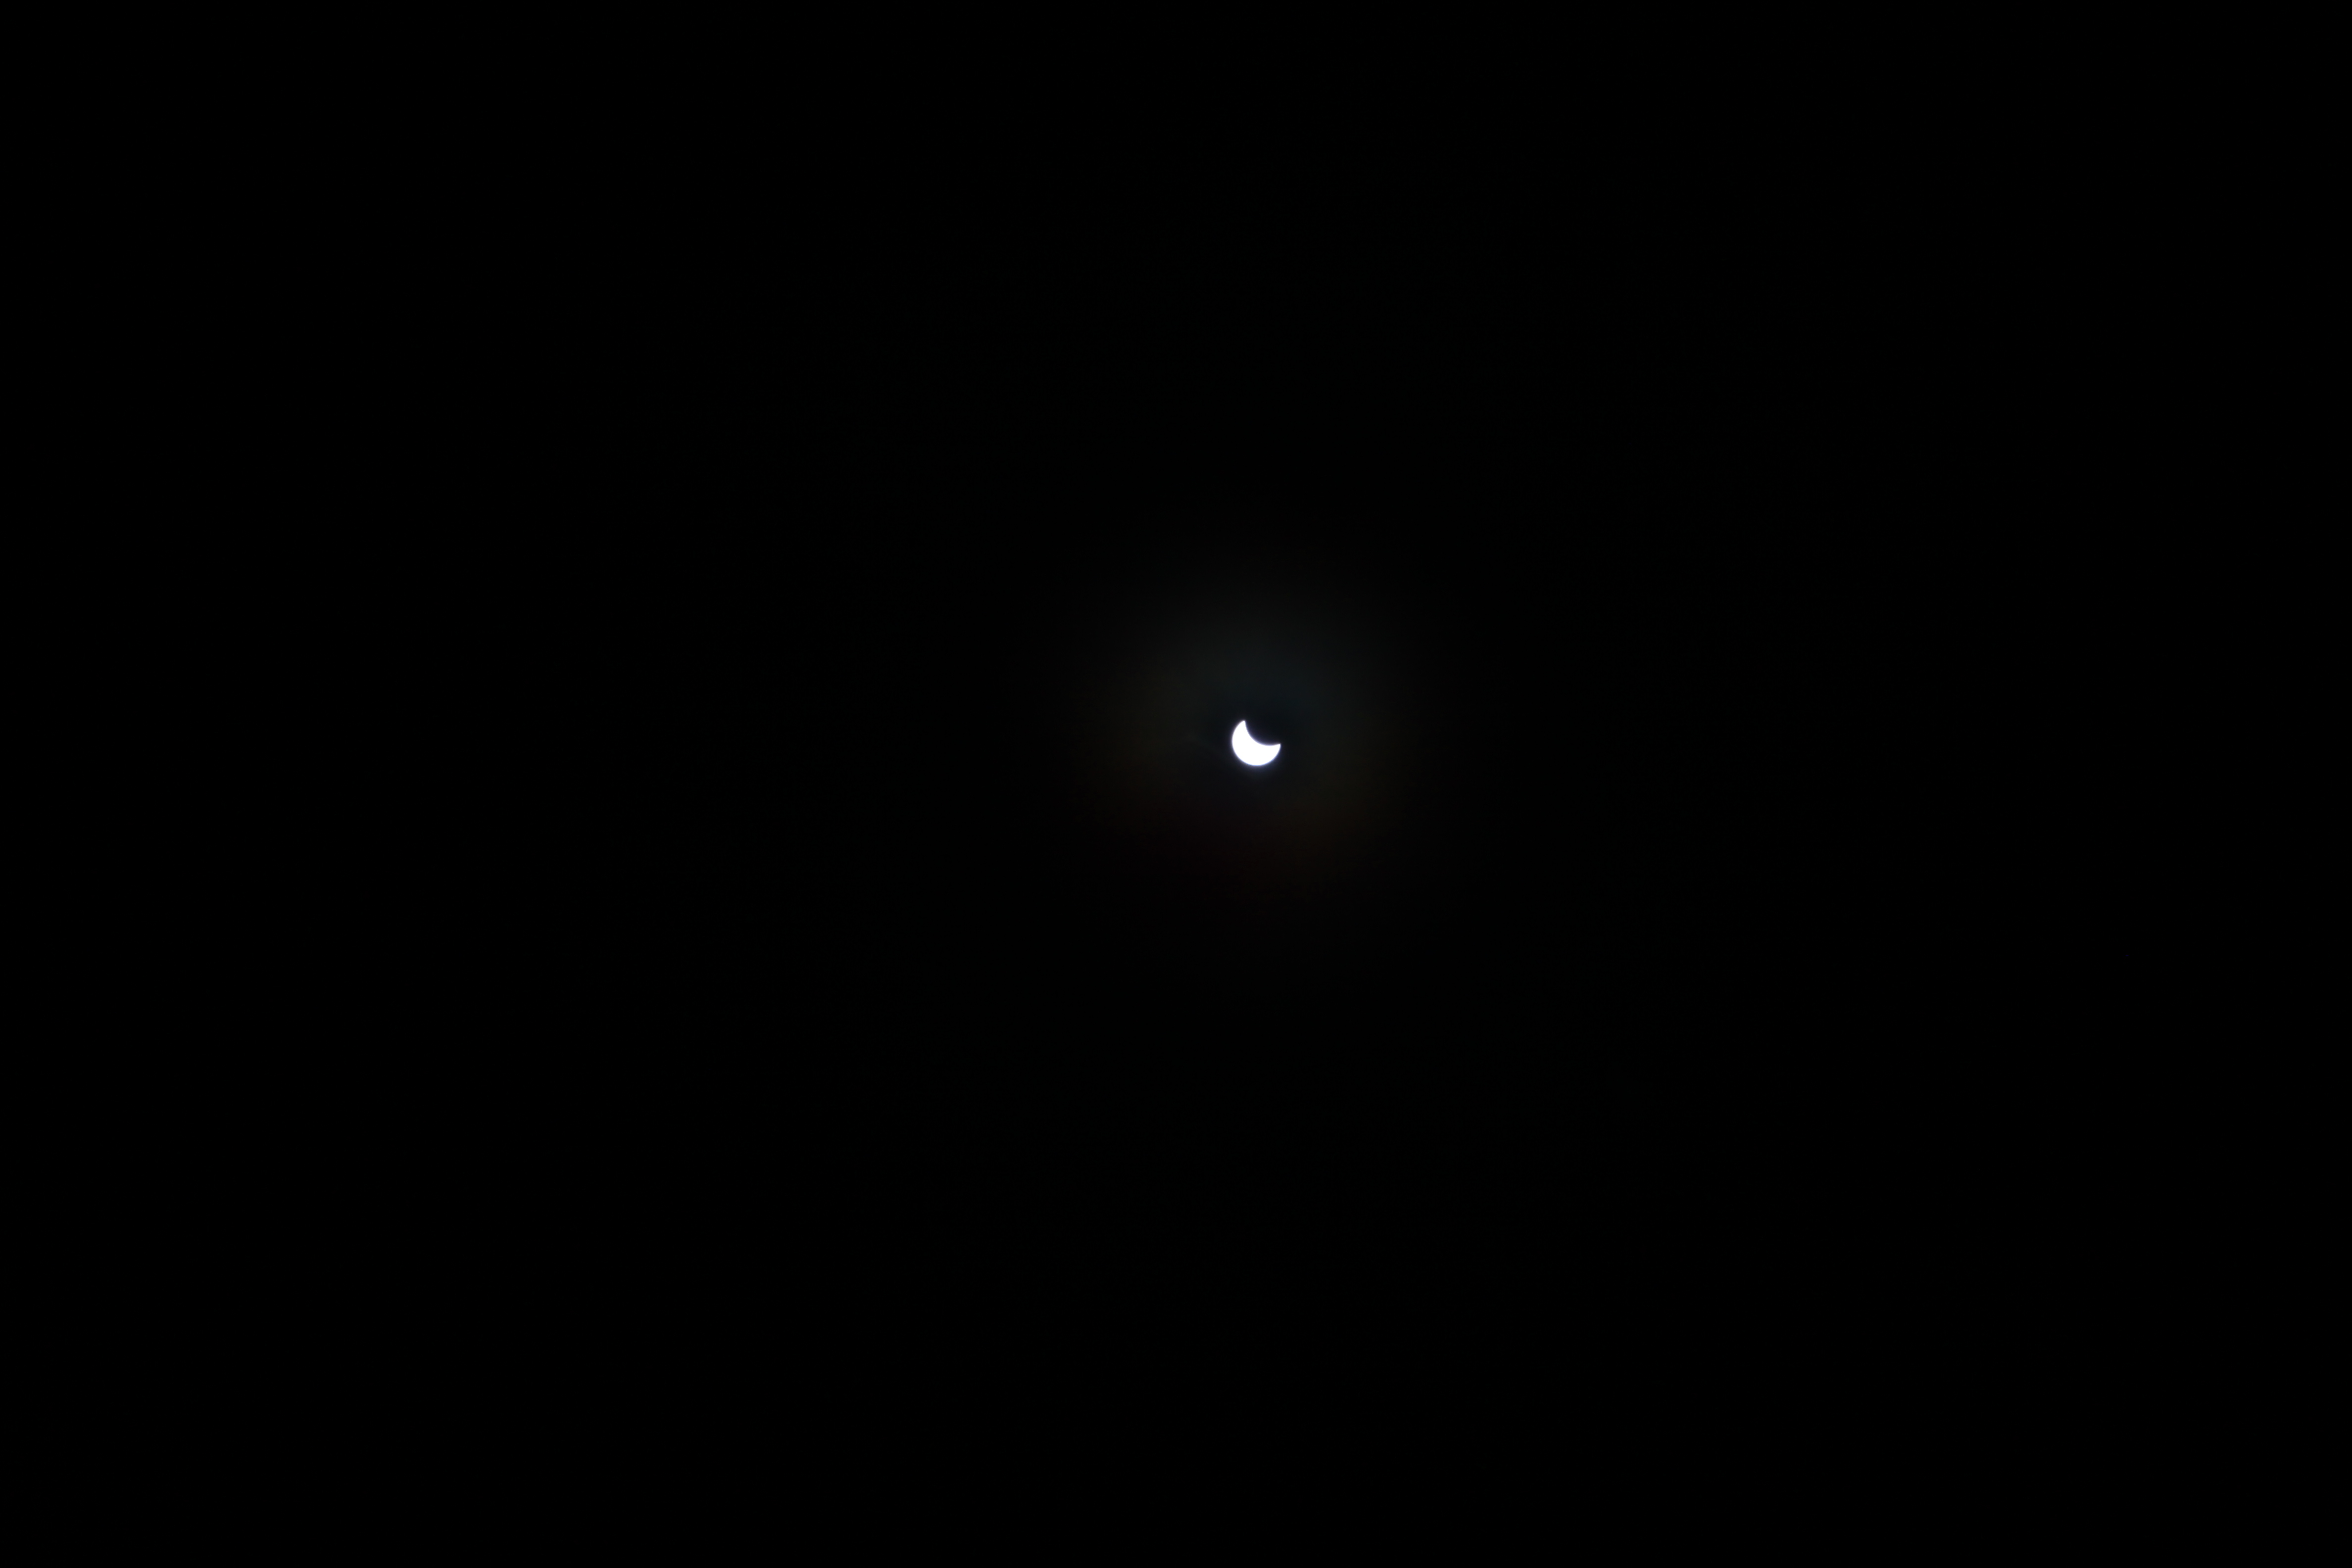 Partial eclipse on March 20, 2015